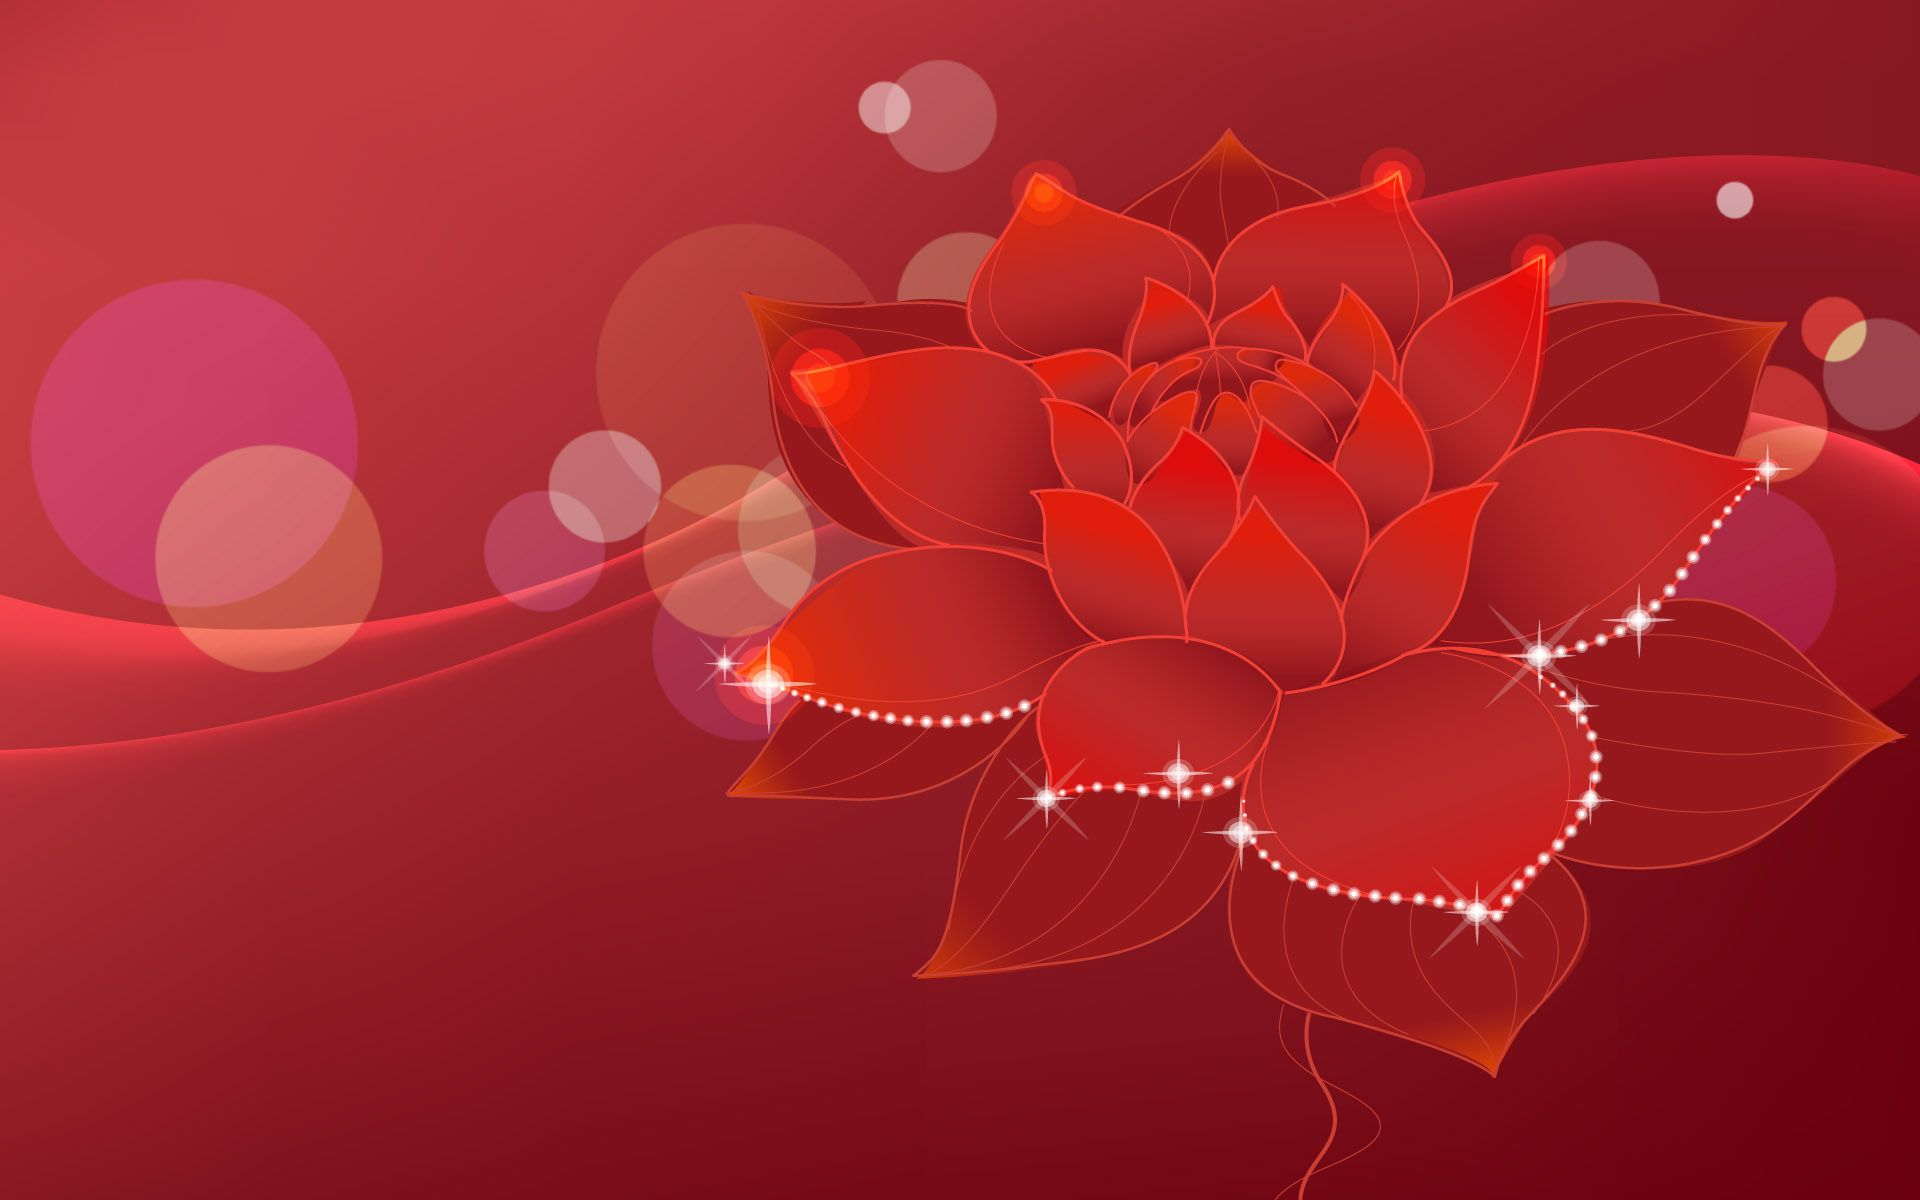 red flowers photos Red Flowers Background Free